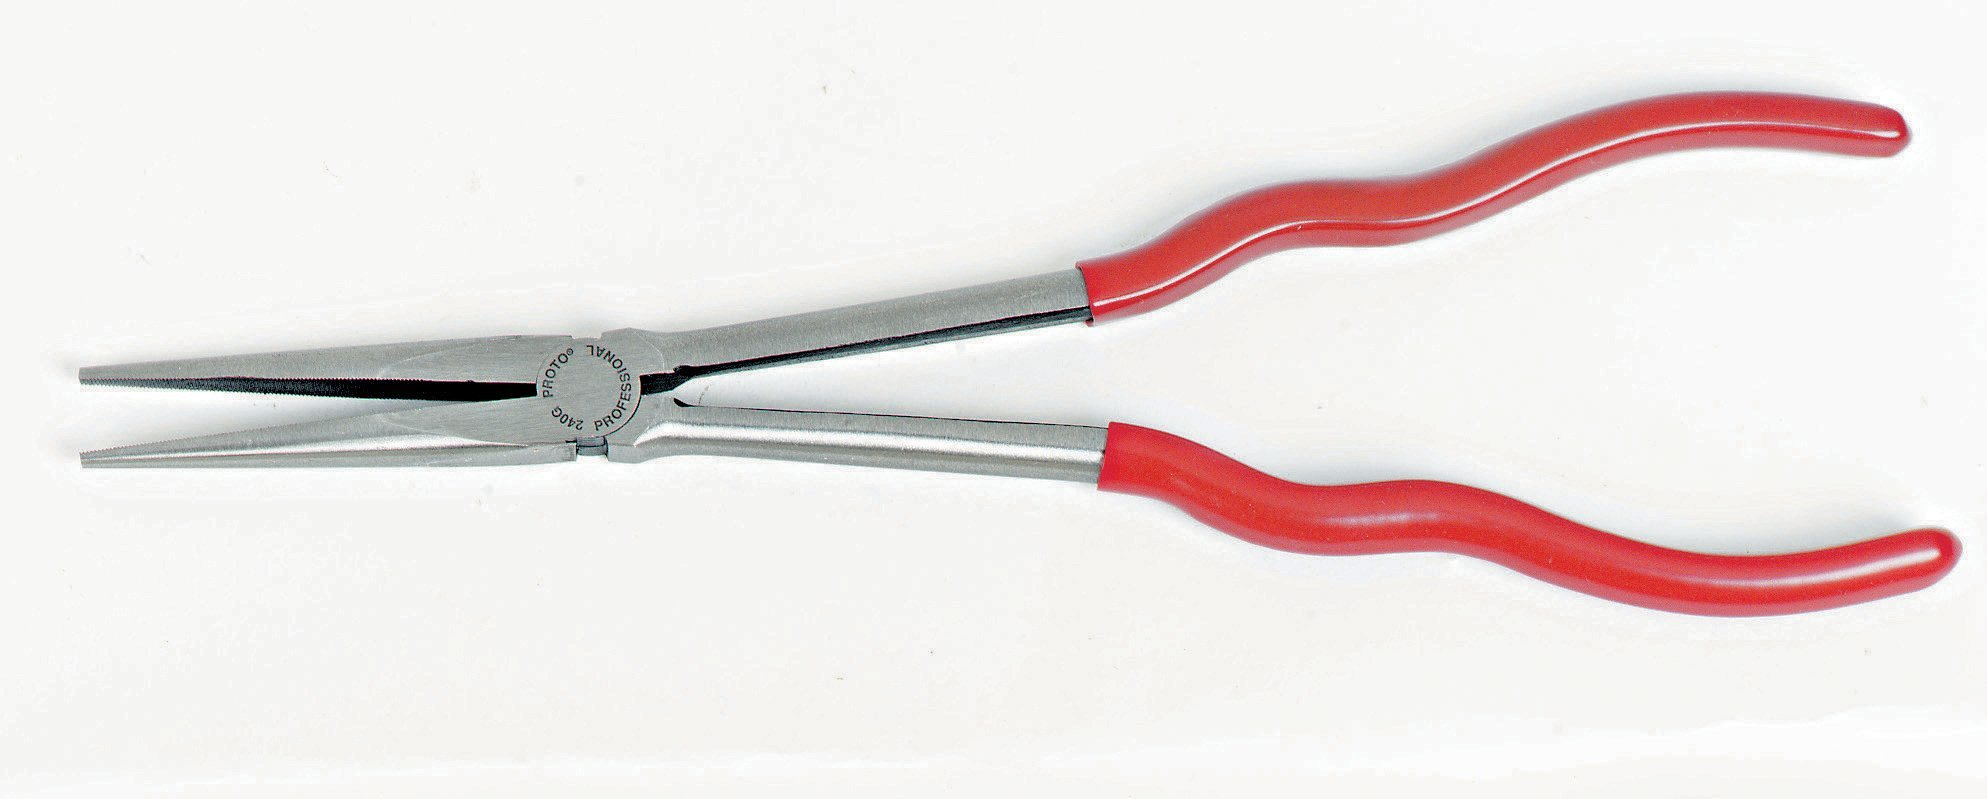 Stanley Proto J240G Proto 11-9/16-Inch Needle-Nose Pliers, Long Reach by Proto